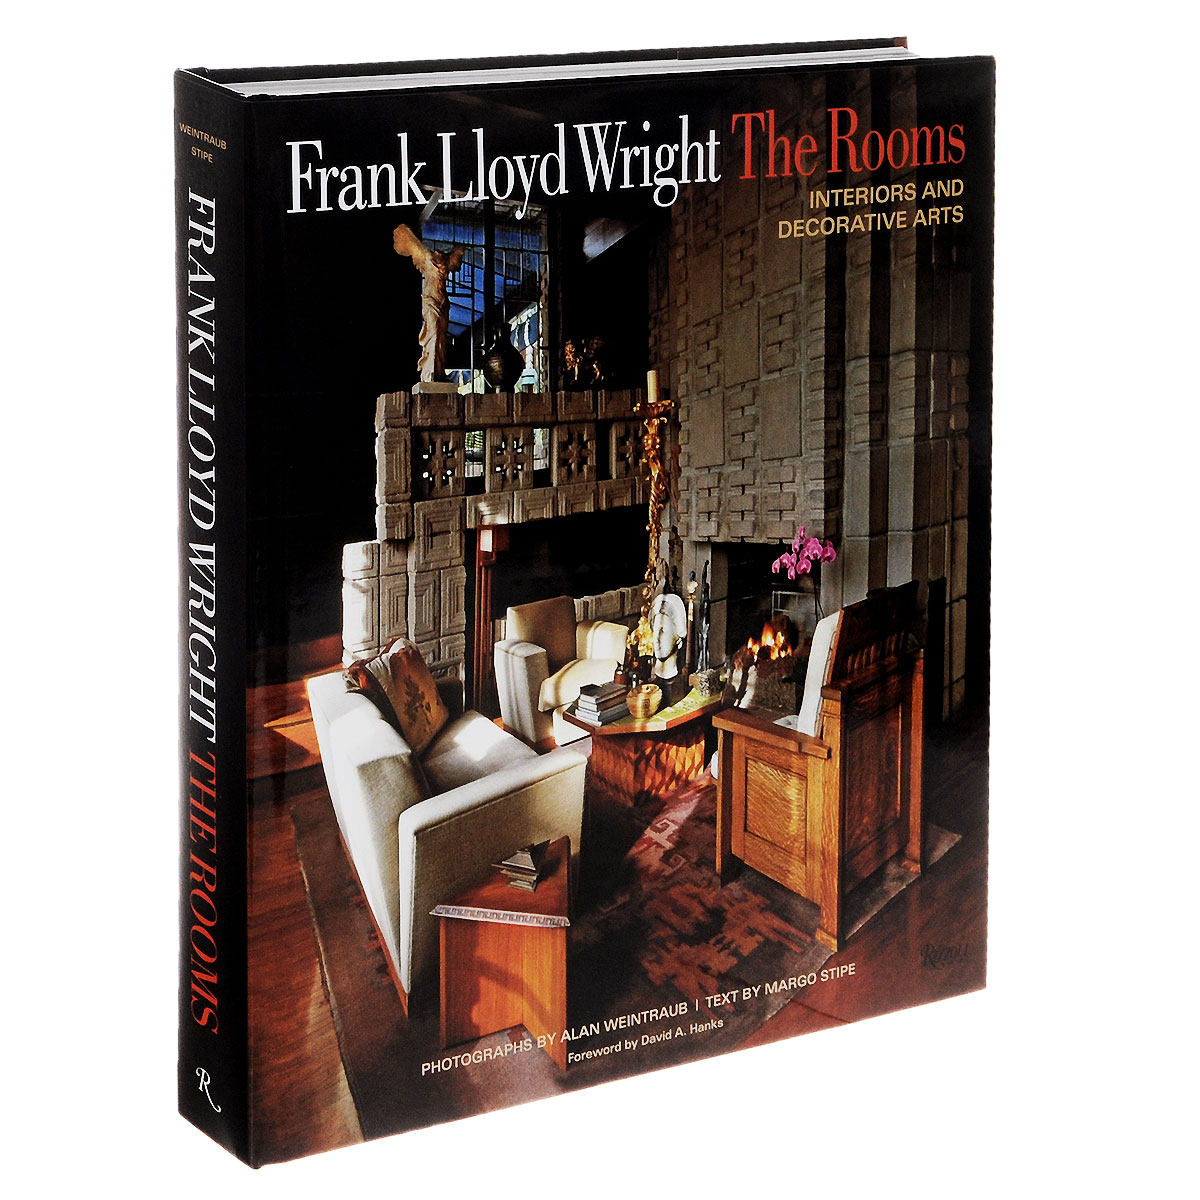 Frank Lloyd Wright: The Rooms: Interiors and Decorative Arts contributions to the orlicz space of gai sequence spaces